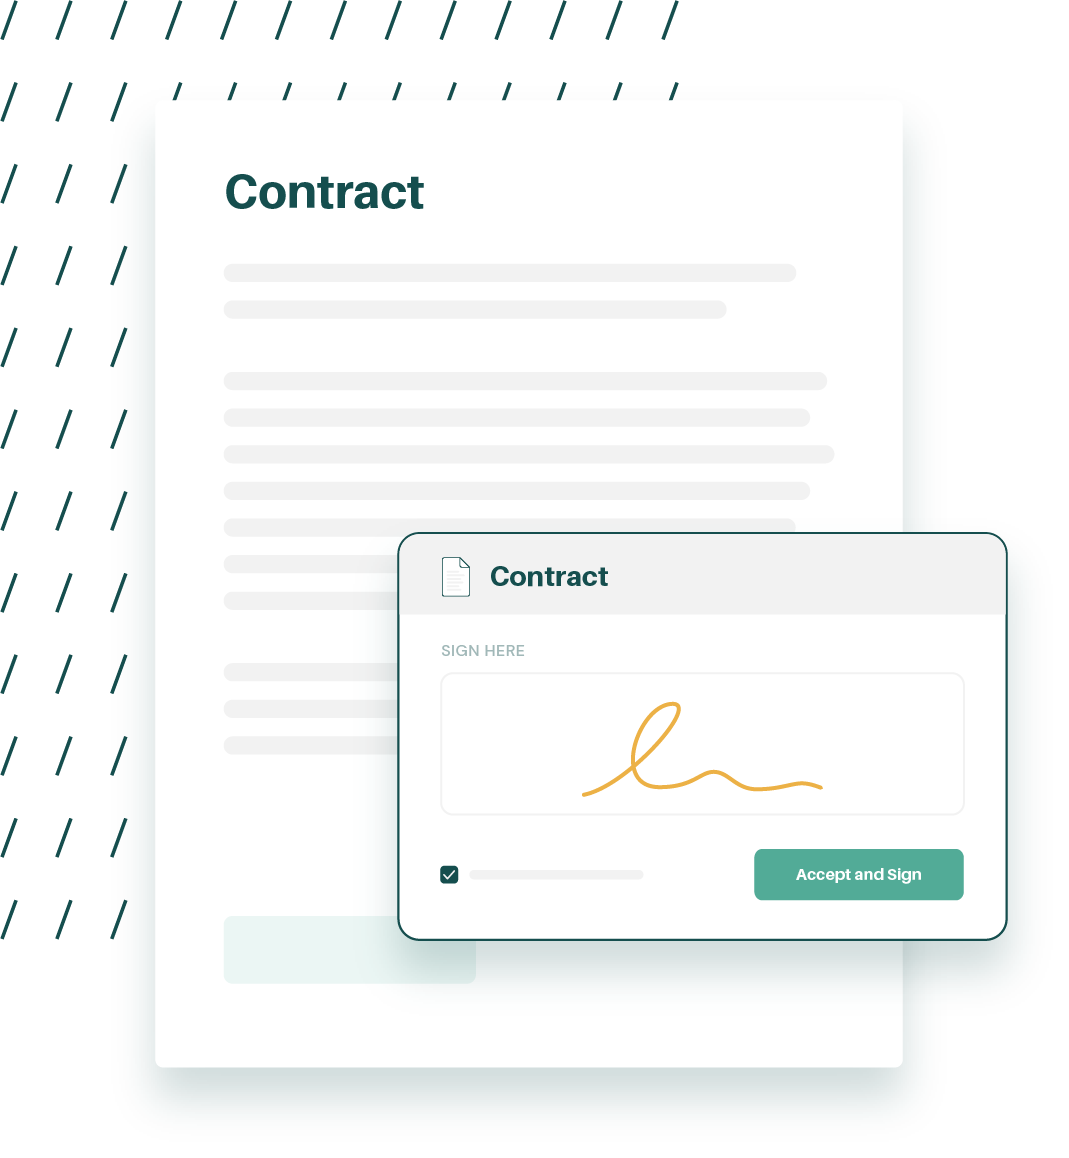 An illustration of a contract getting electronically signed